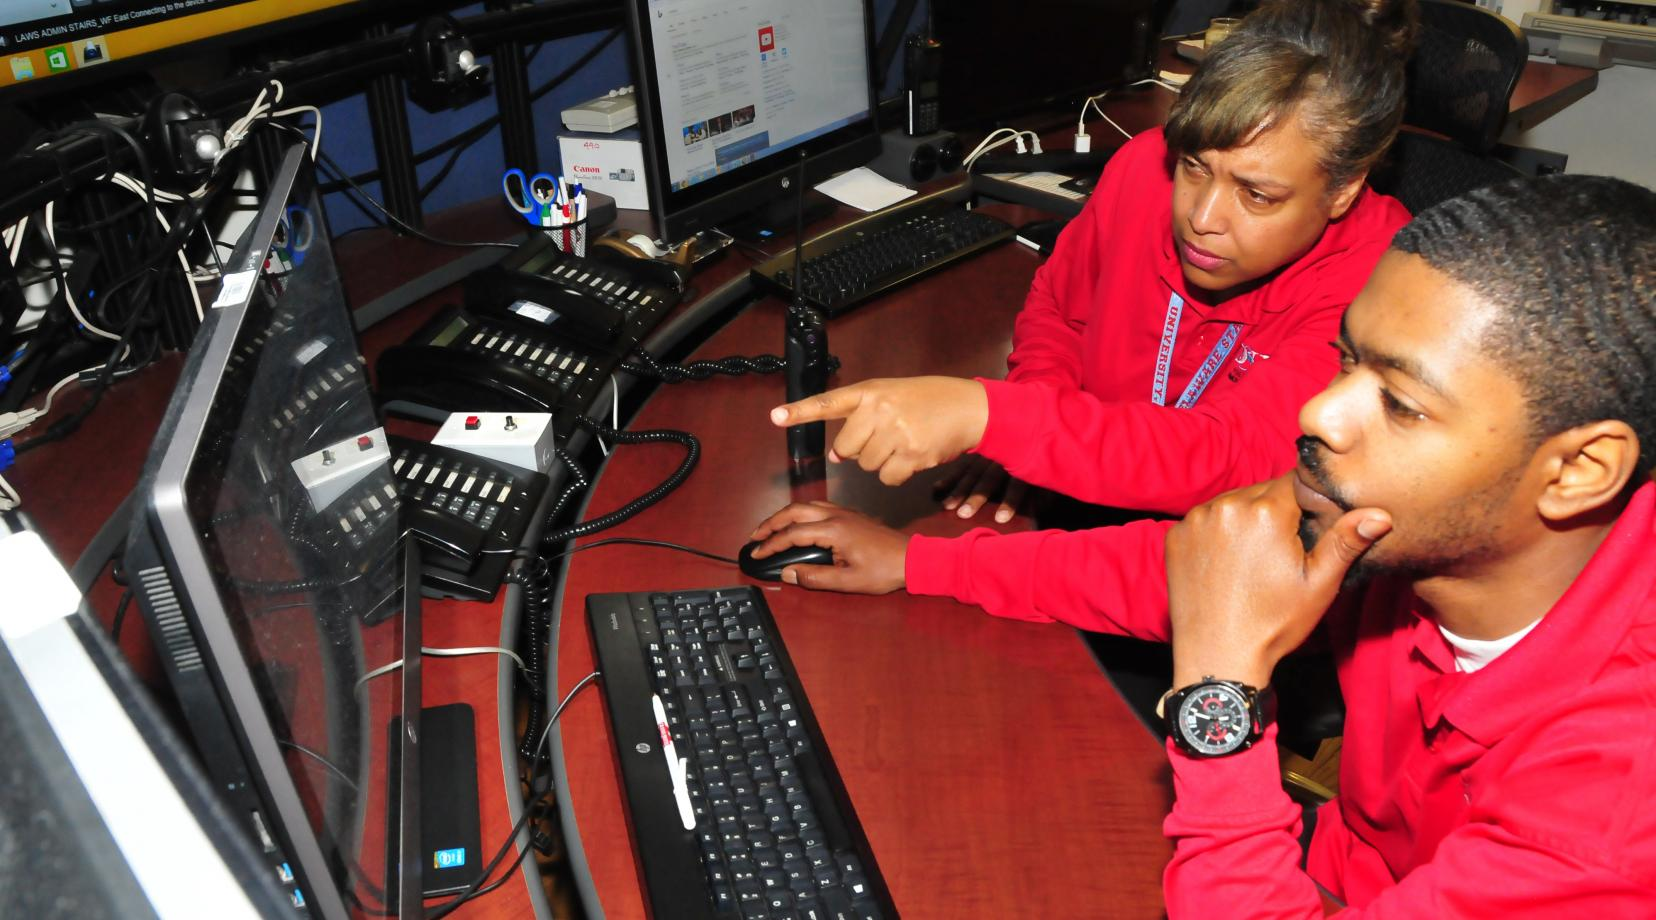 DSU Police dispatchers Kimberley Wood and James Paige Jr. were among the dispatchers who were tested during the April 11 active shooter exercise on campus.